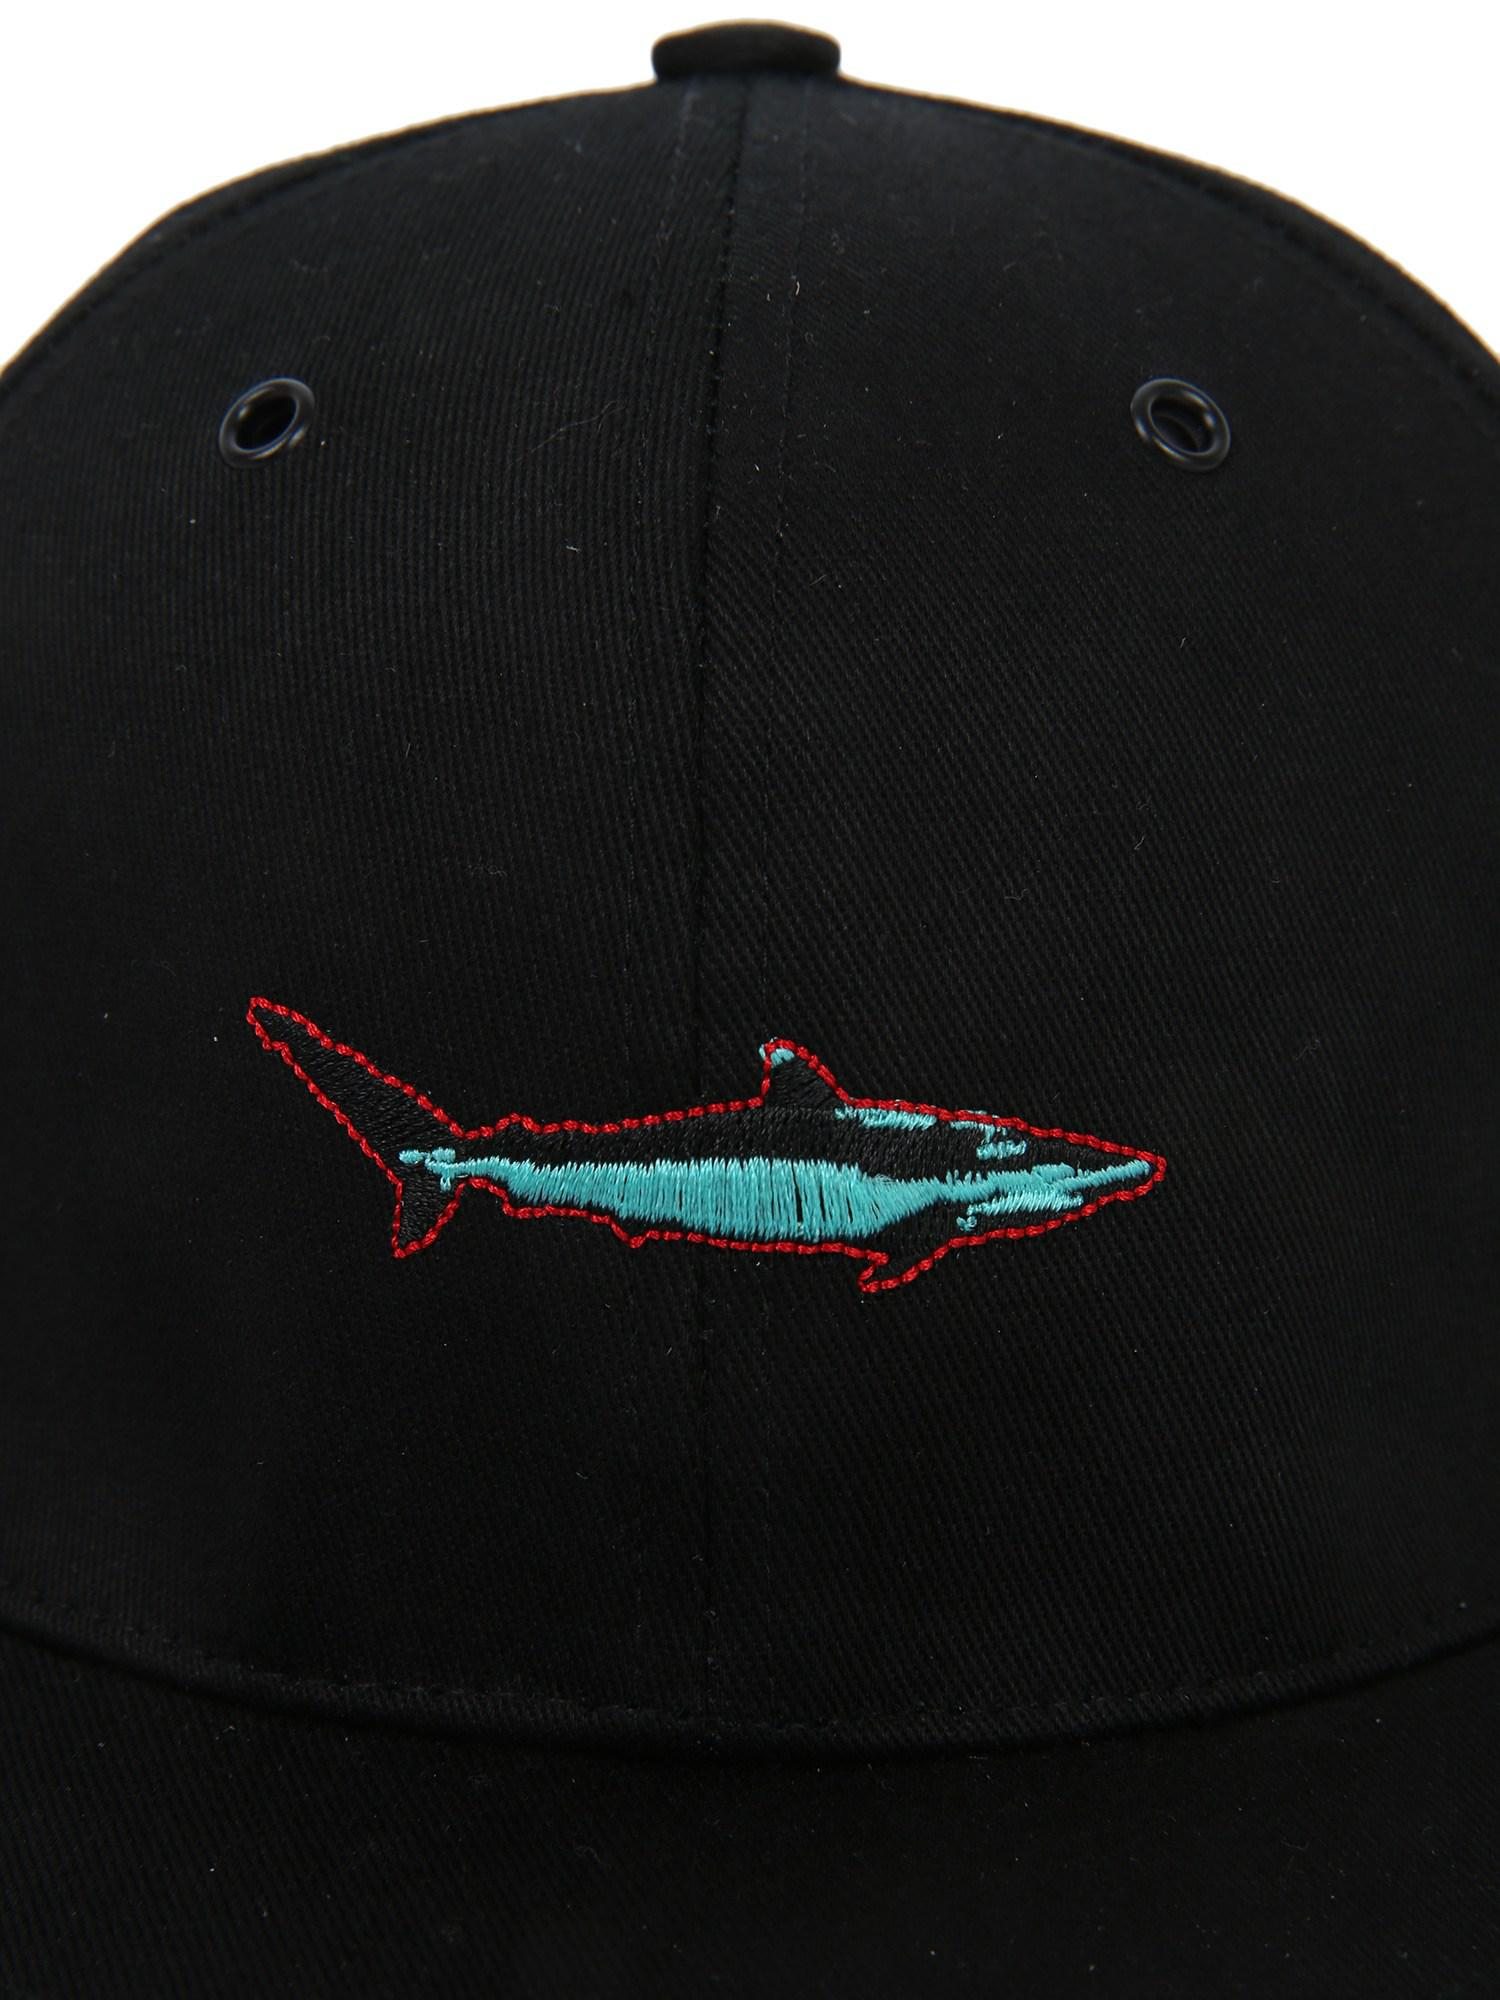 e330076e669 PS by Paul Smith - Black Shark Cotton Baseball Cap for Men - Lyst. View  fullscreen